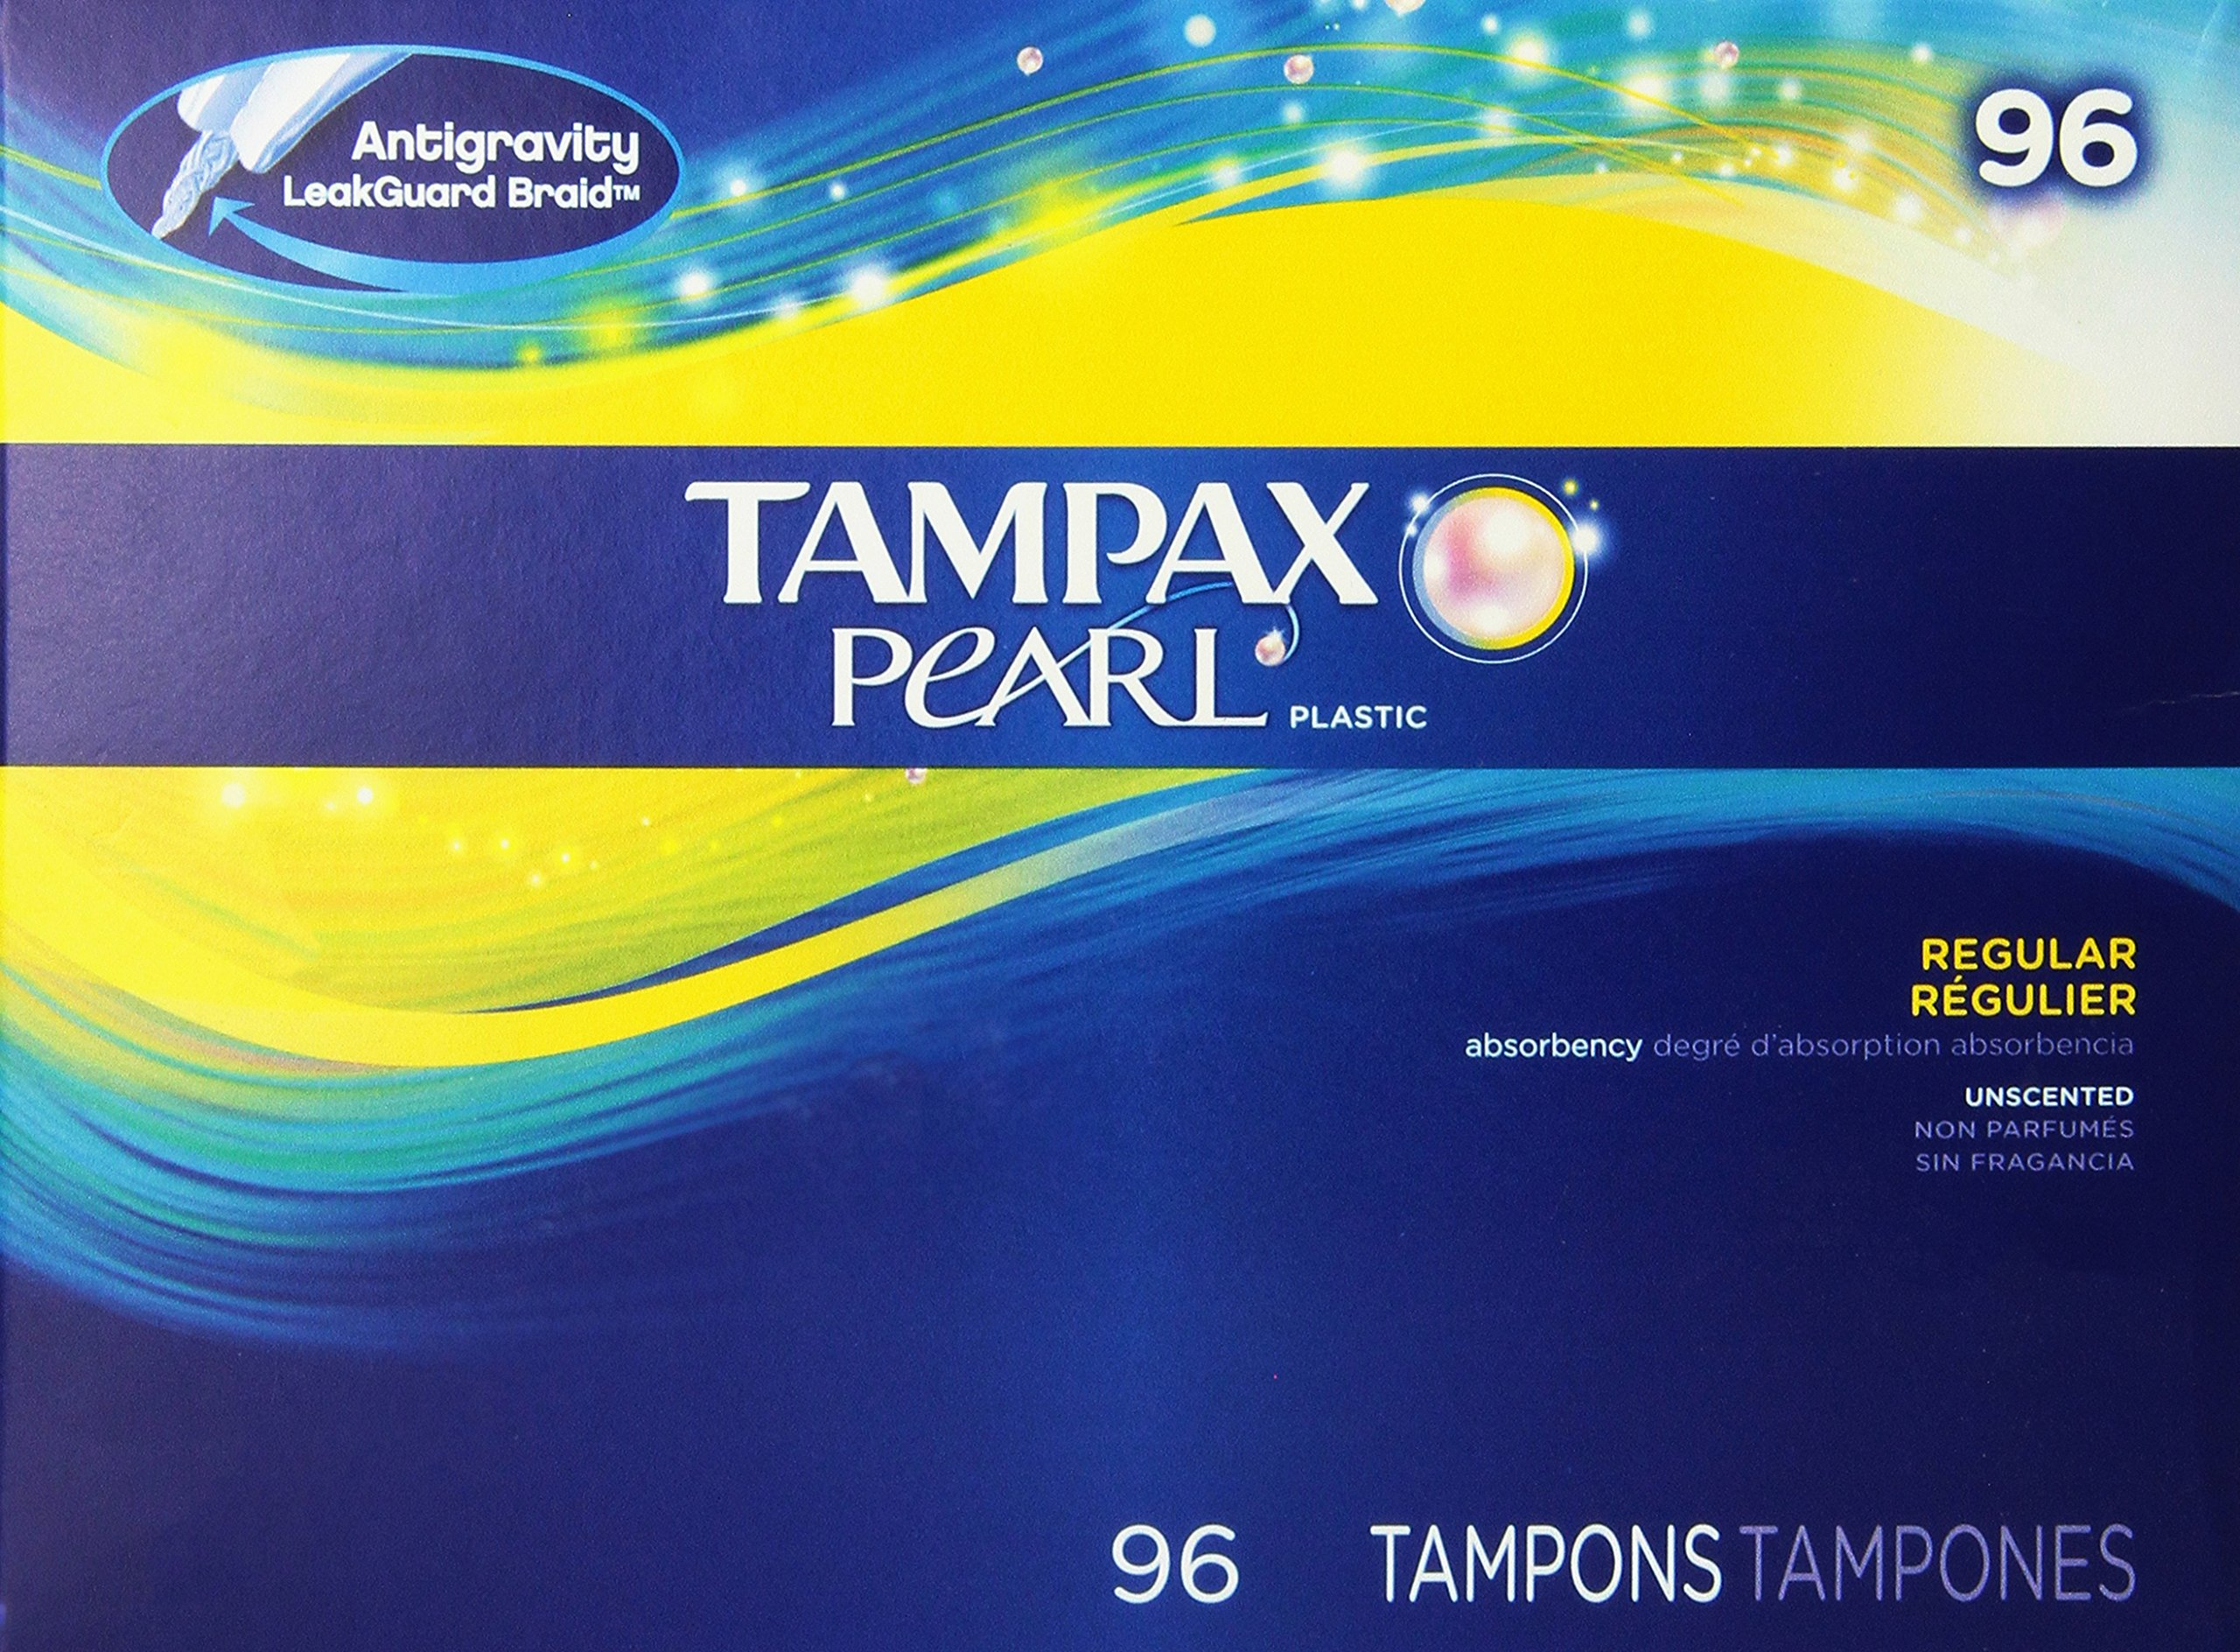 Tampax Pearl Regular Absorbency Unscented Tampons, 96 Count, Pack of 1 by Tampax